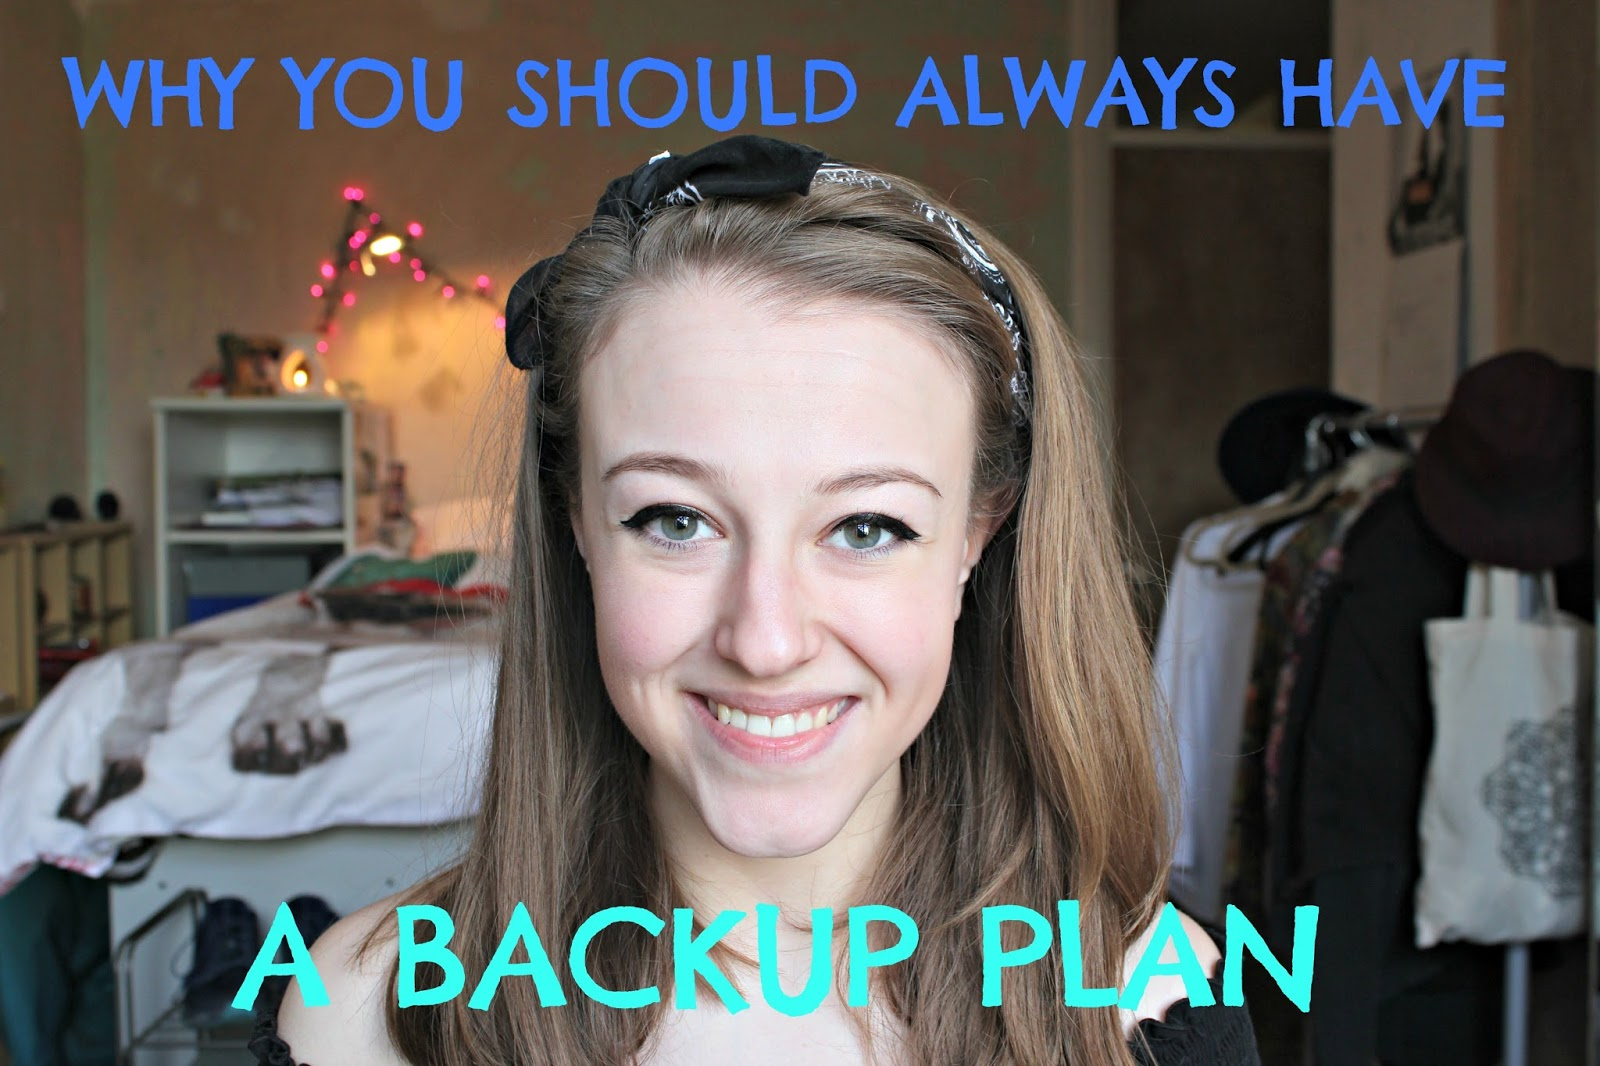 Why you should always have a backup plan